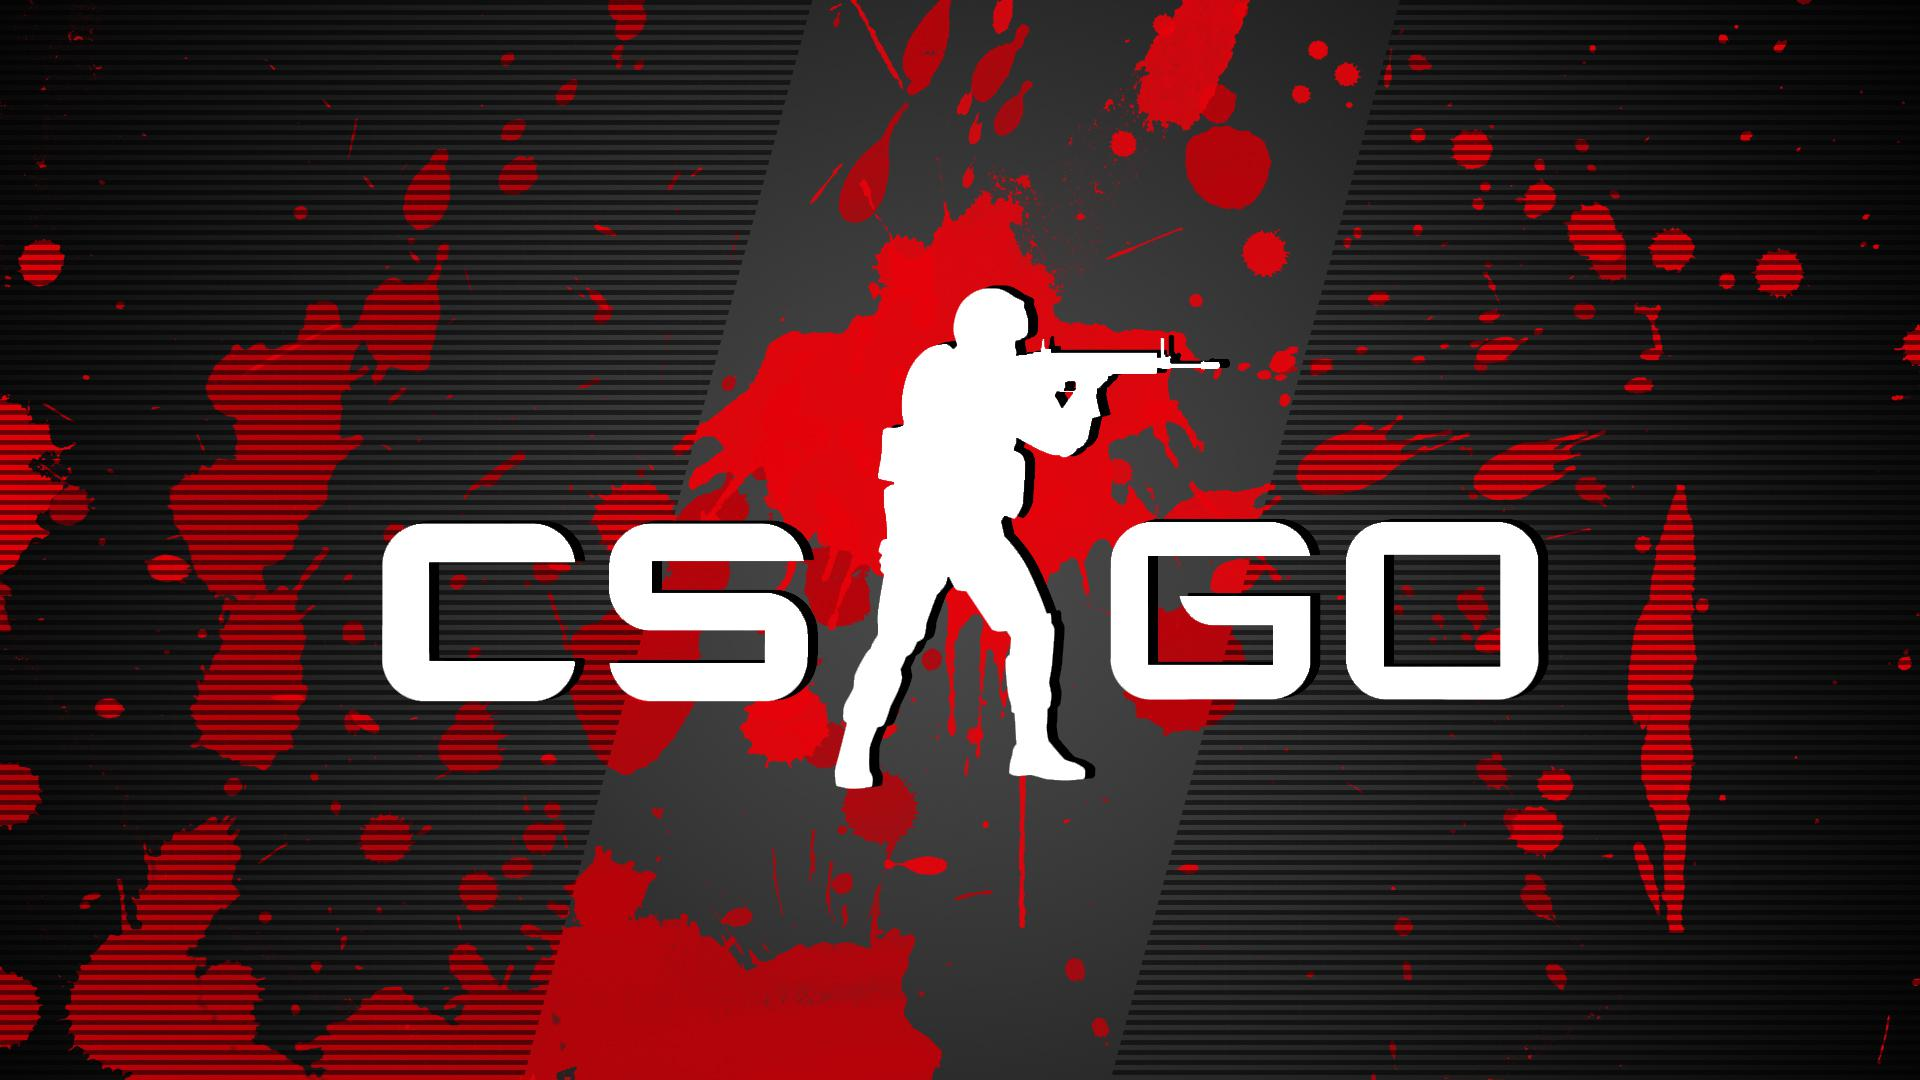 Cs go red splatter   126680   High Quality and Resolution 1920x1080